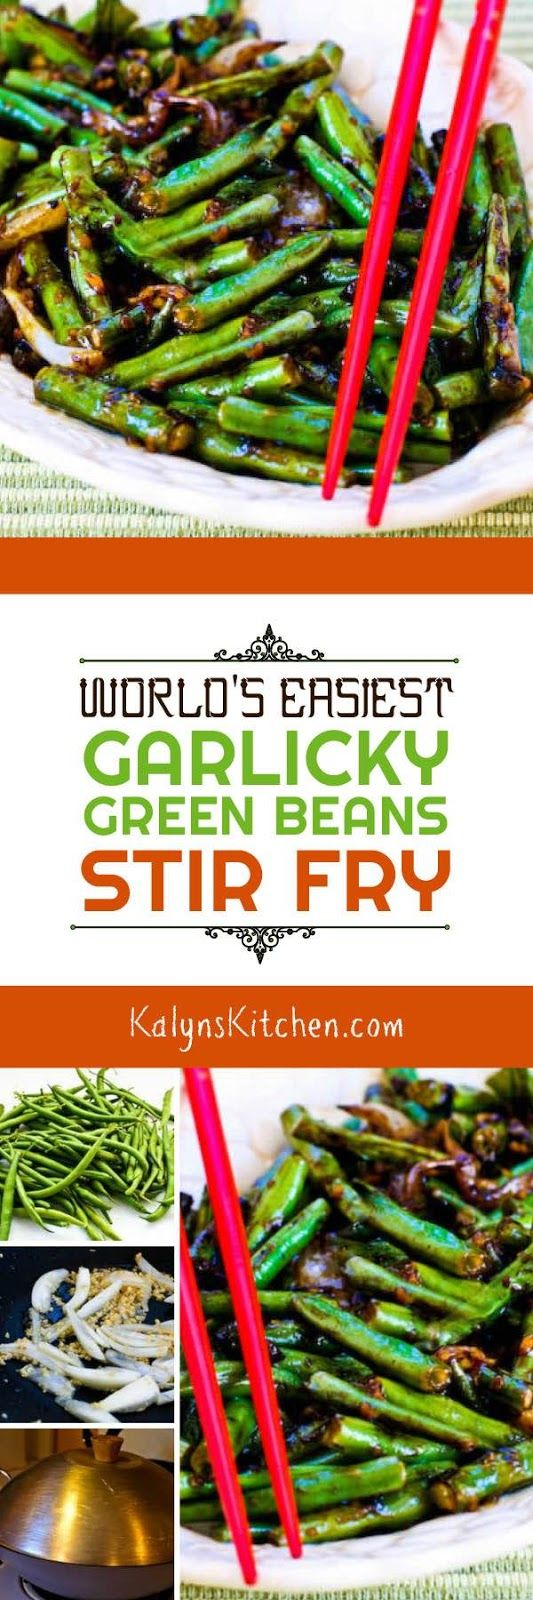 Grab some fresh green beans and make this World's Easiest Garlicky Green Beans Stir Fry; this recipe is amazing and it's low-carb and gluten-free. [found on KalynsKitchen.com]